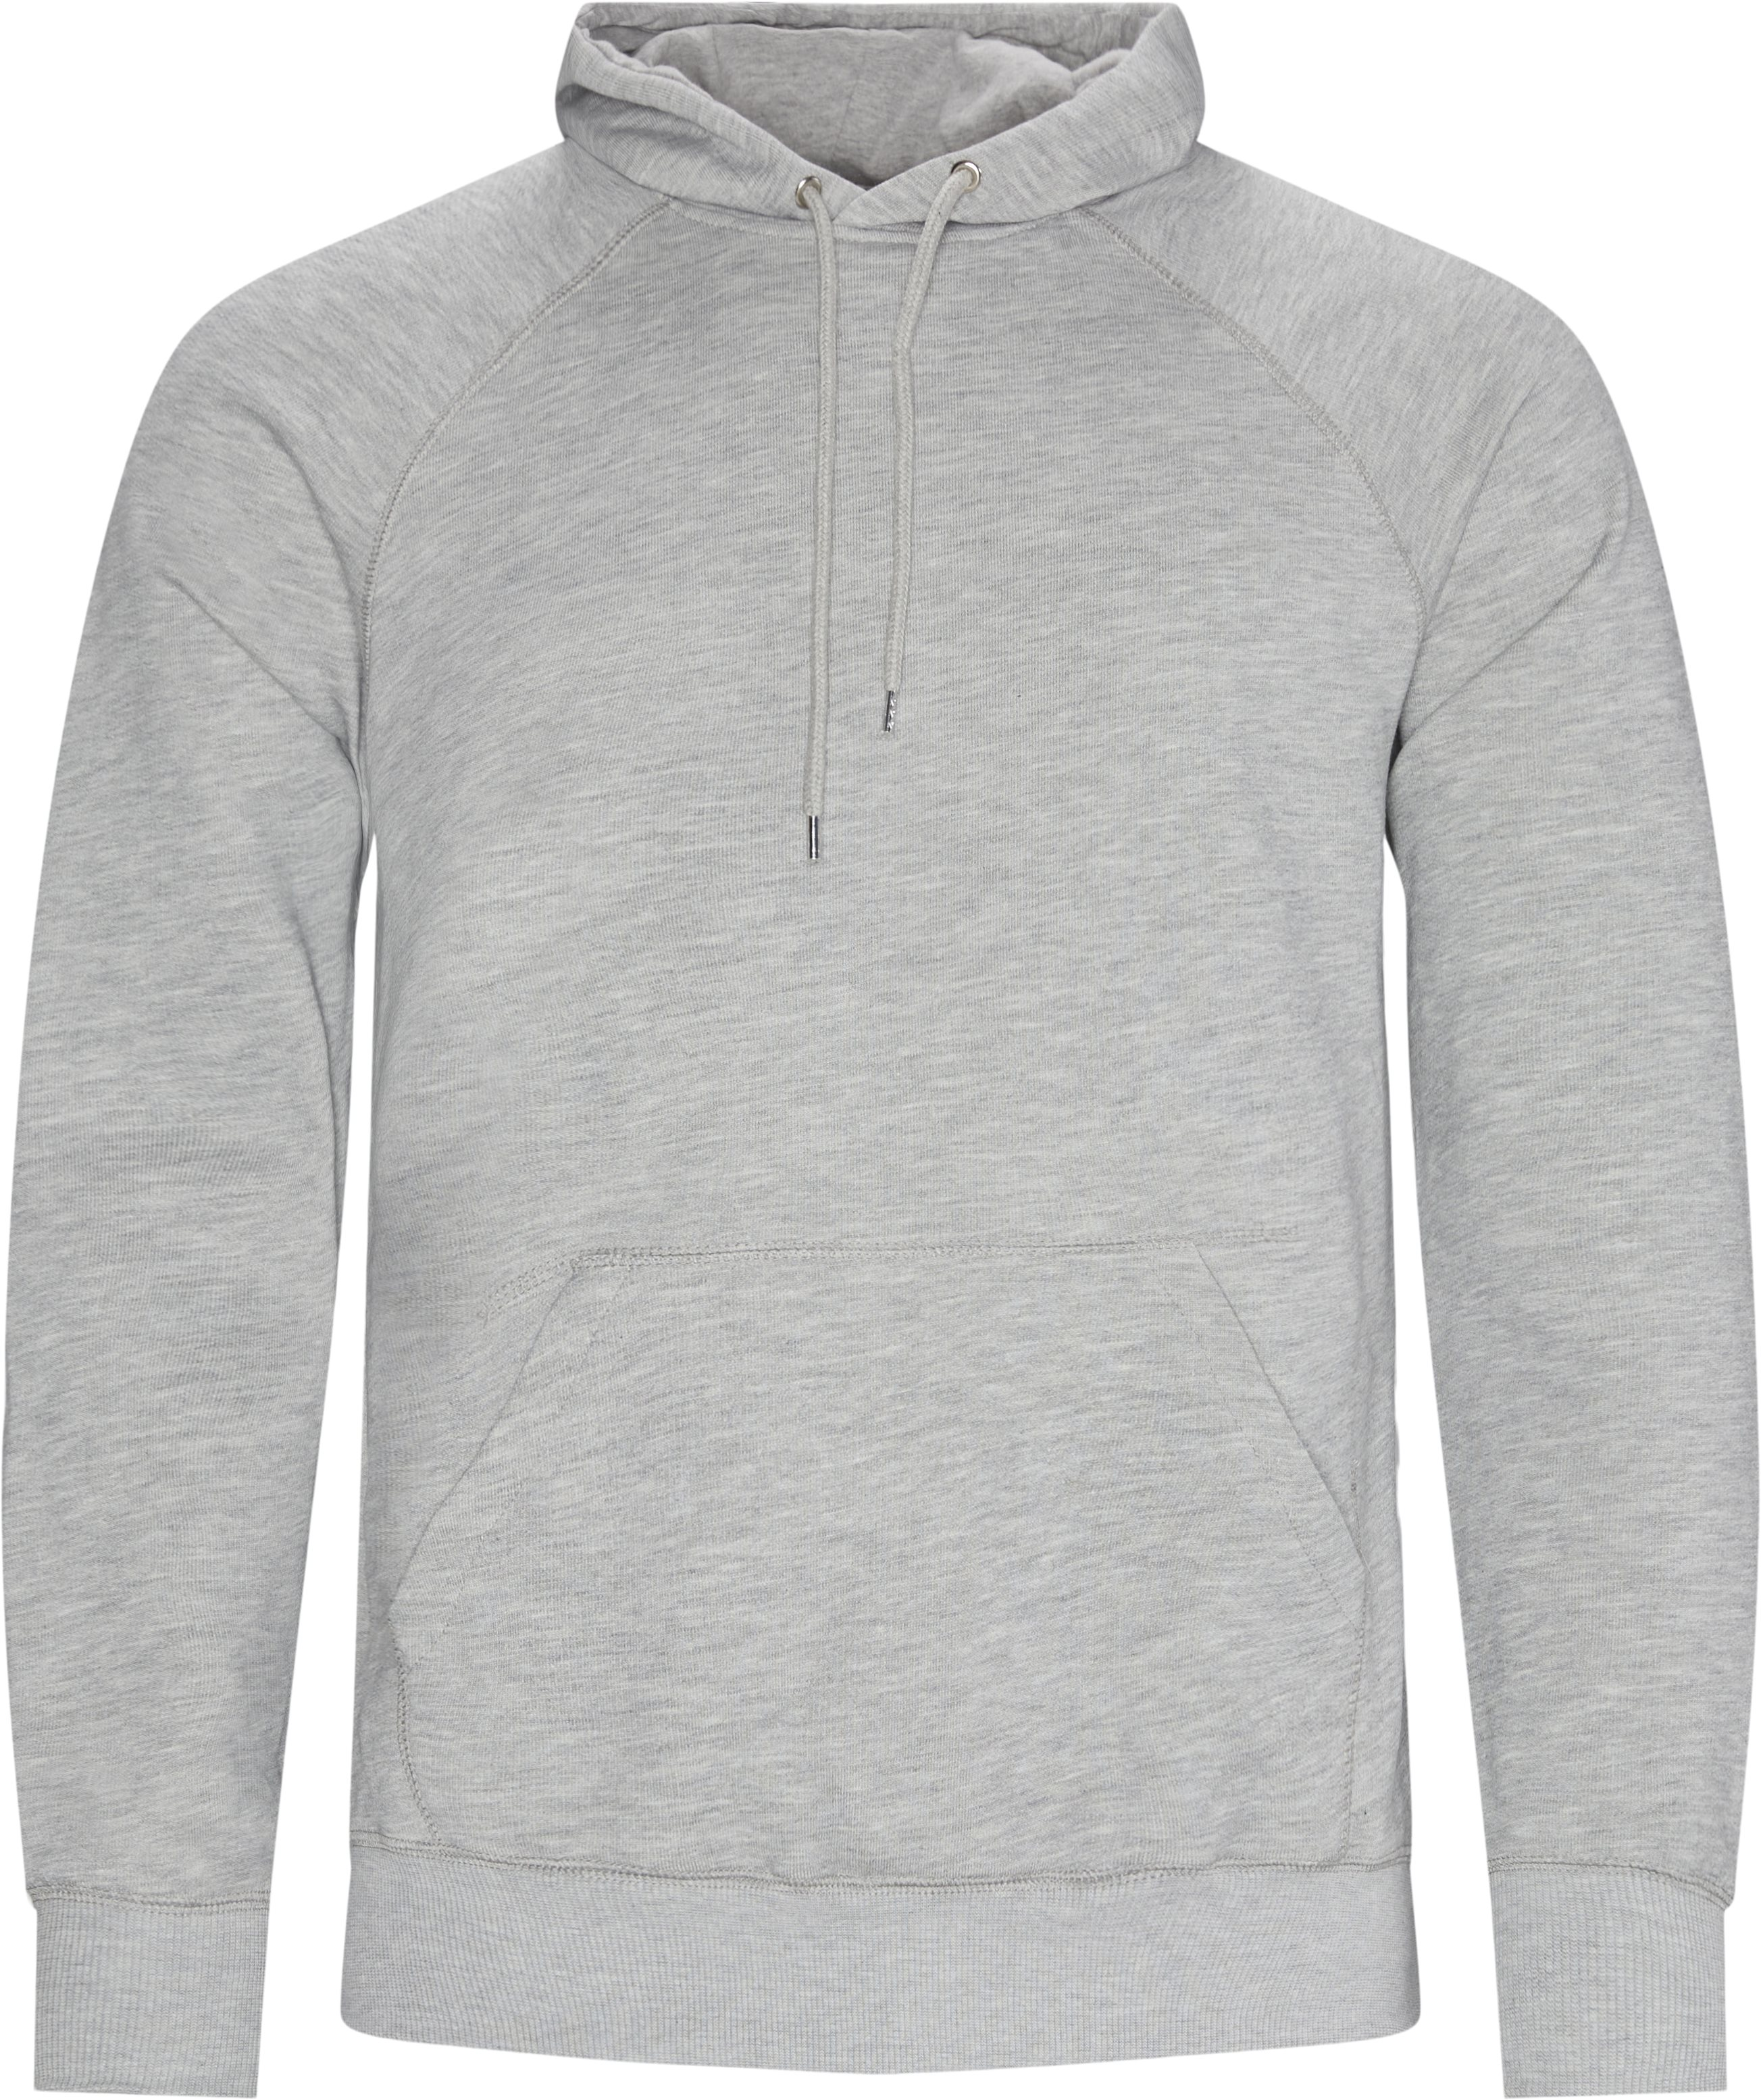 Niort Hoodie - Sweatshirts - Regular - Grey